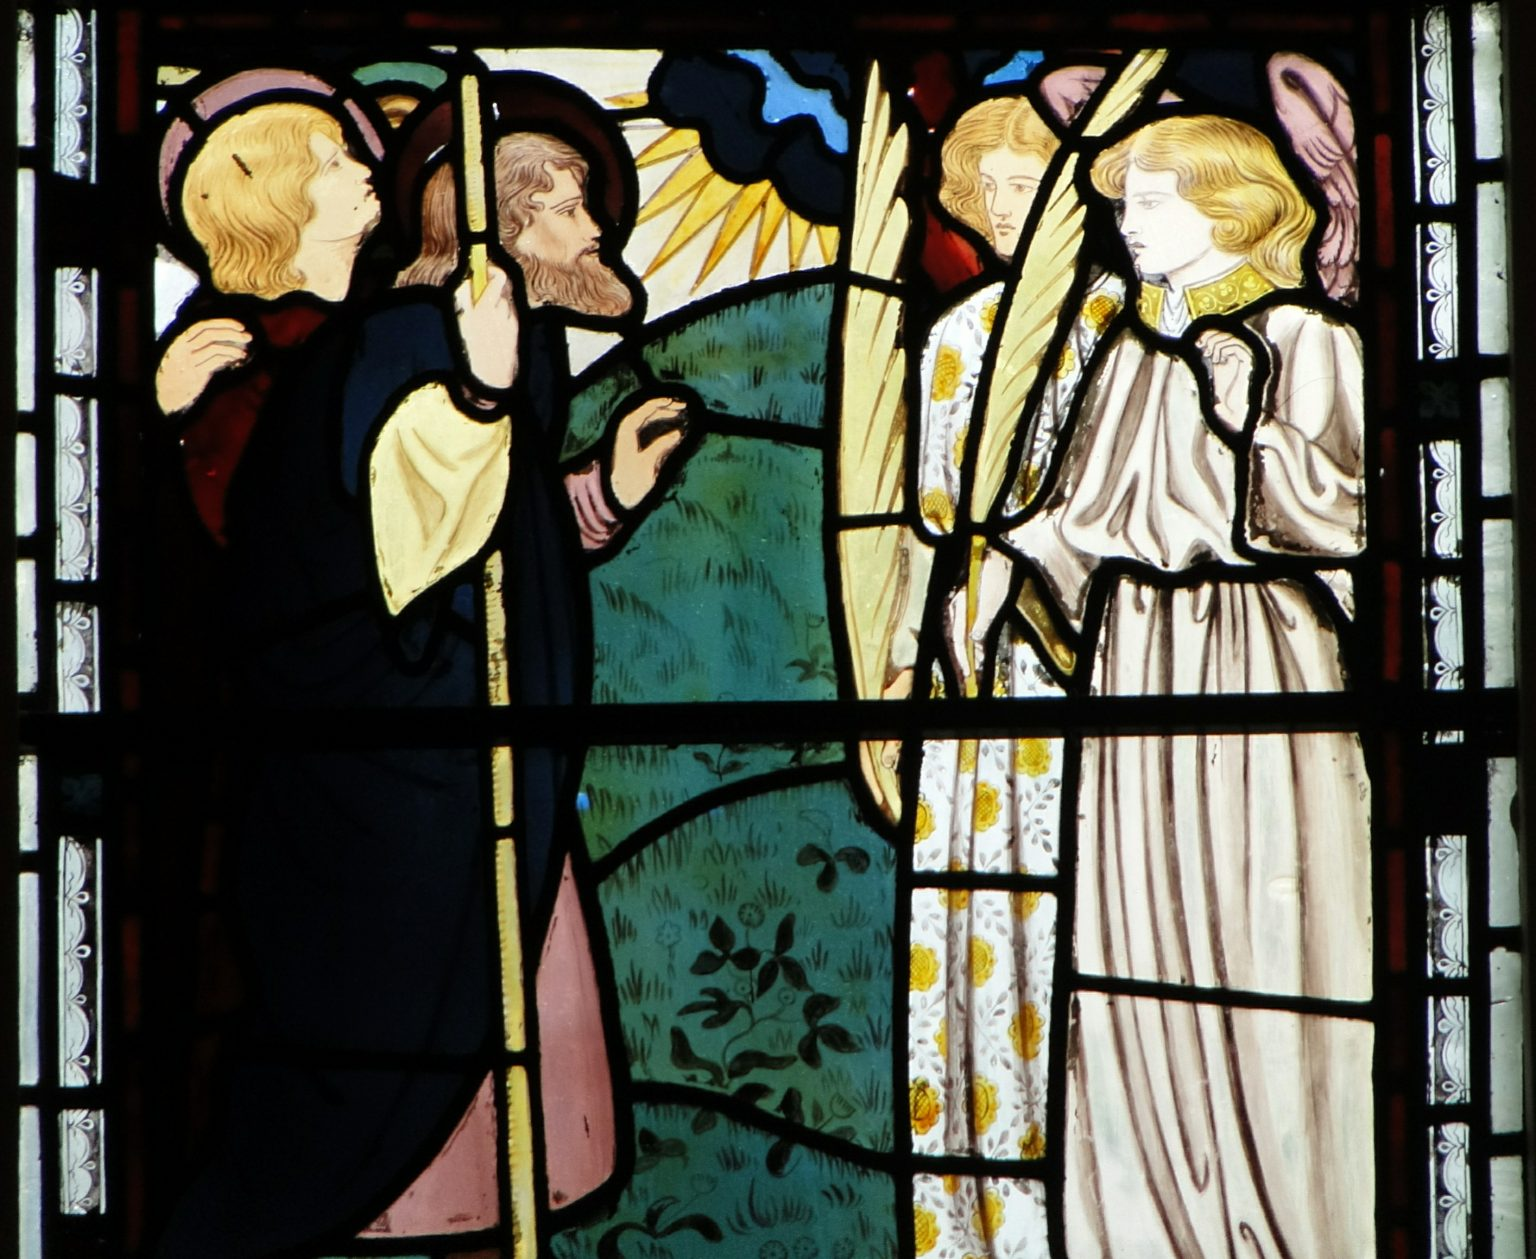 Jesus's ascension into Heaven, as depicted in the East Window of the College Chapel